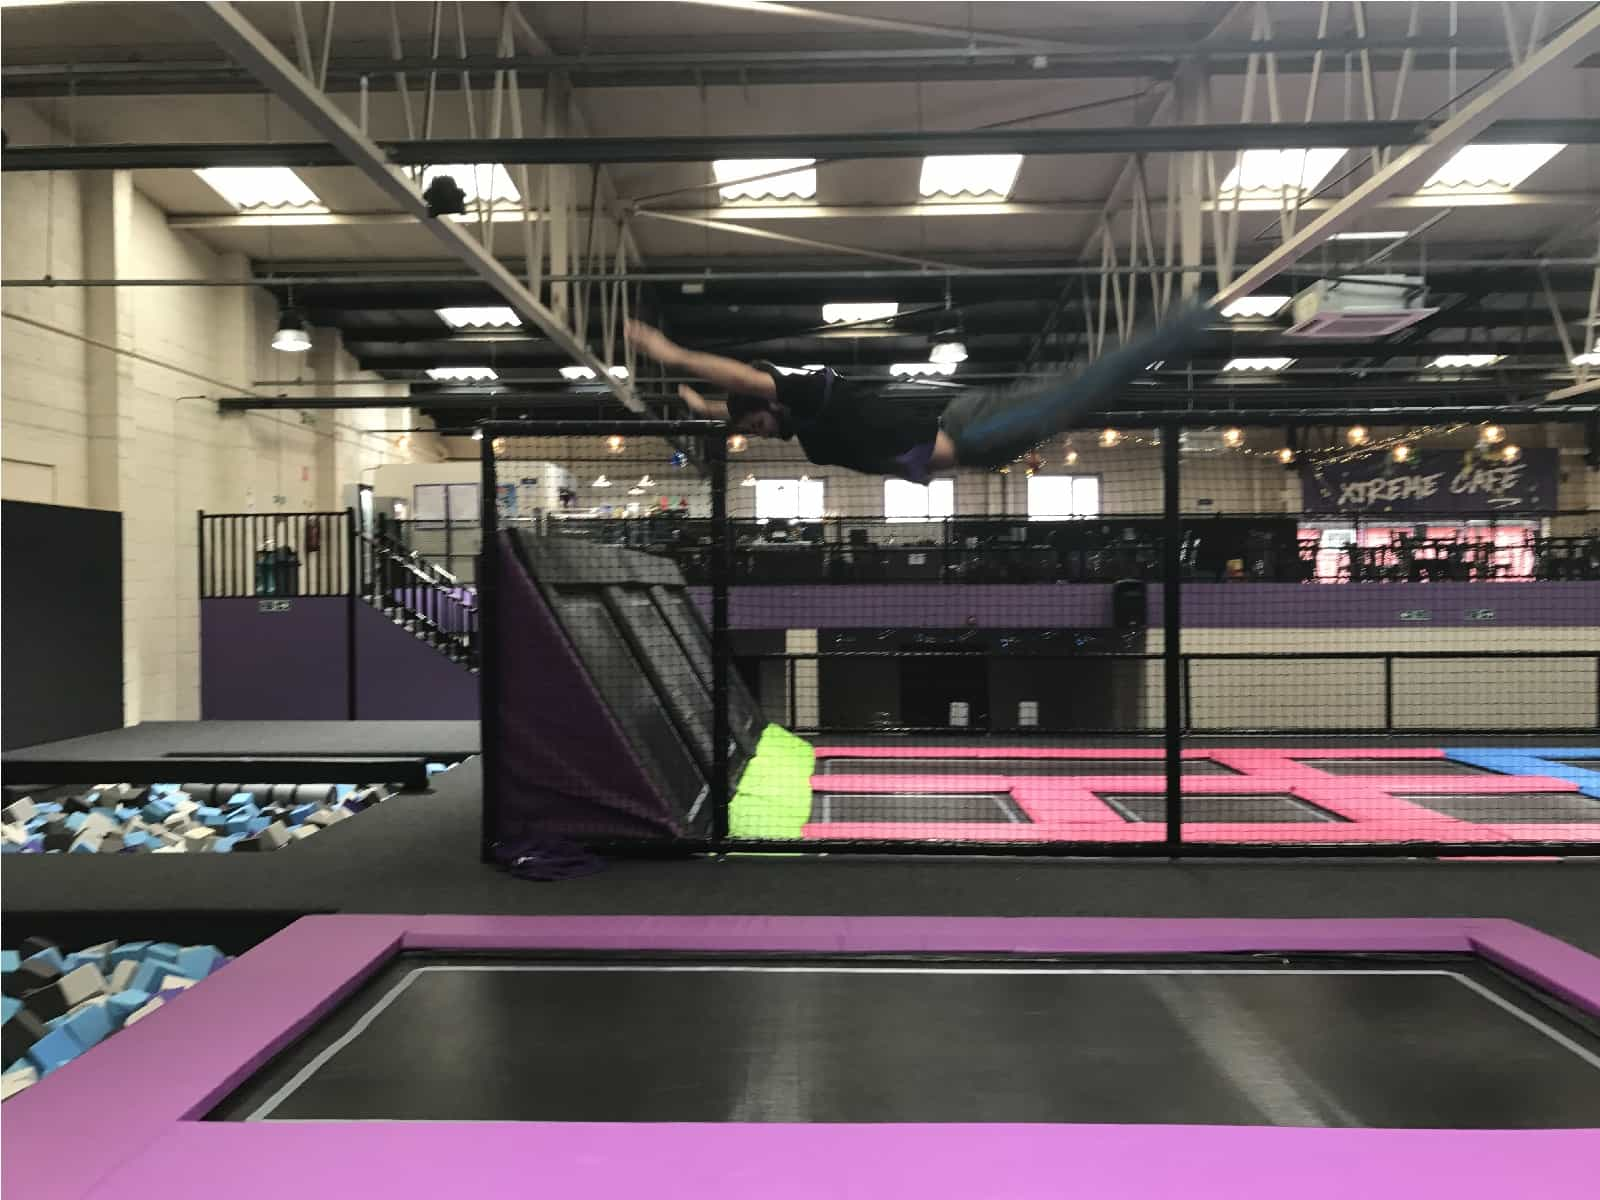 Trampoline room in house - Xtreme Jump